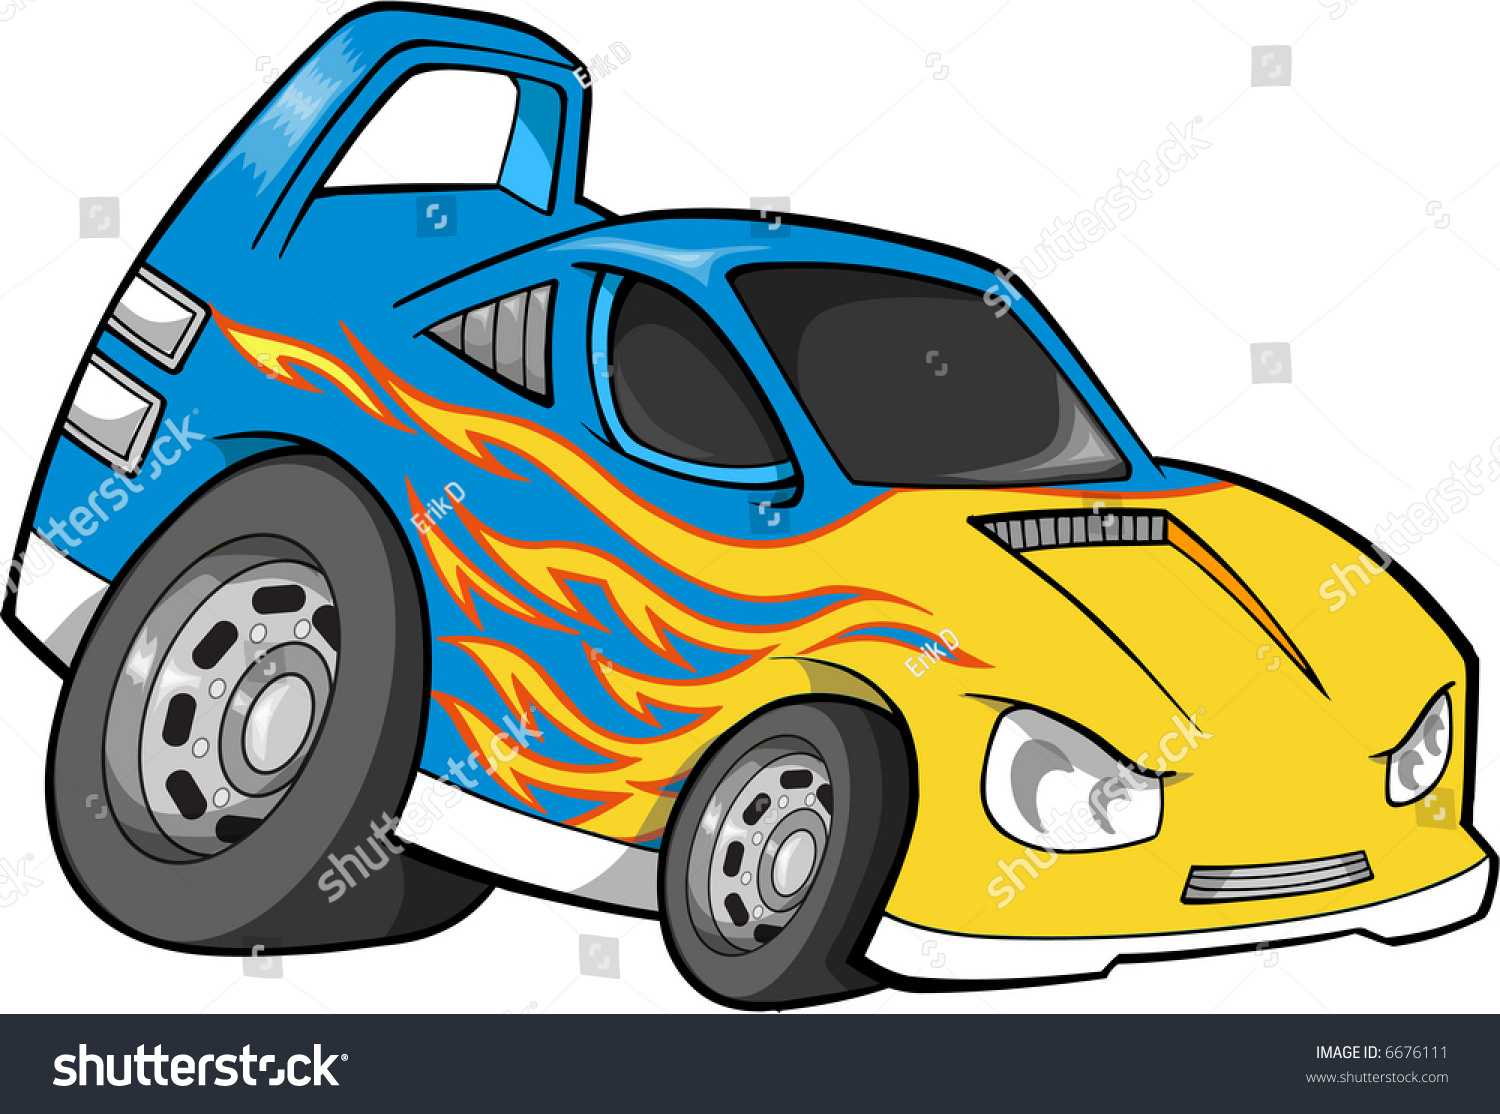 Hot Rod Race Car Vector Illustration Stock Vector 6676111 - Shutterstock